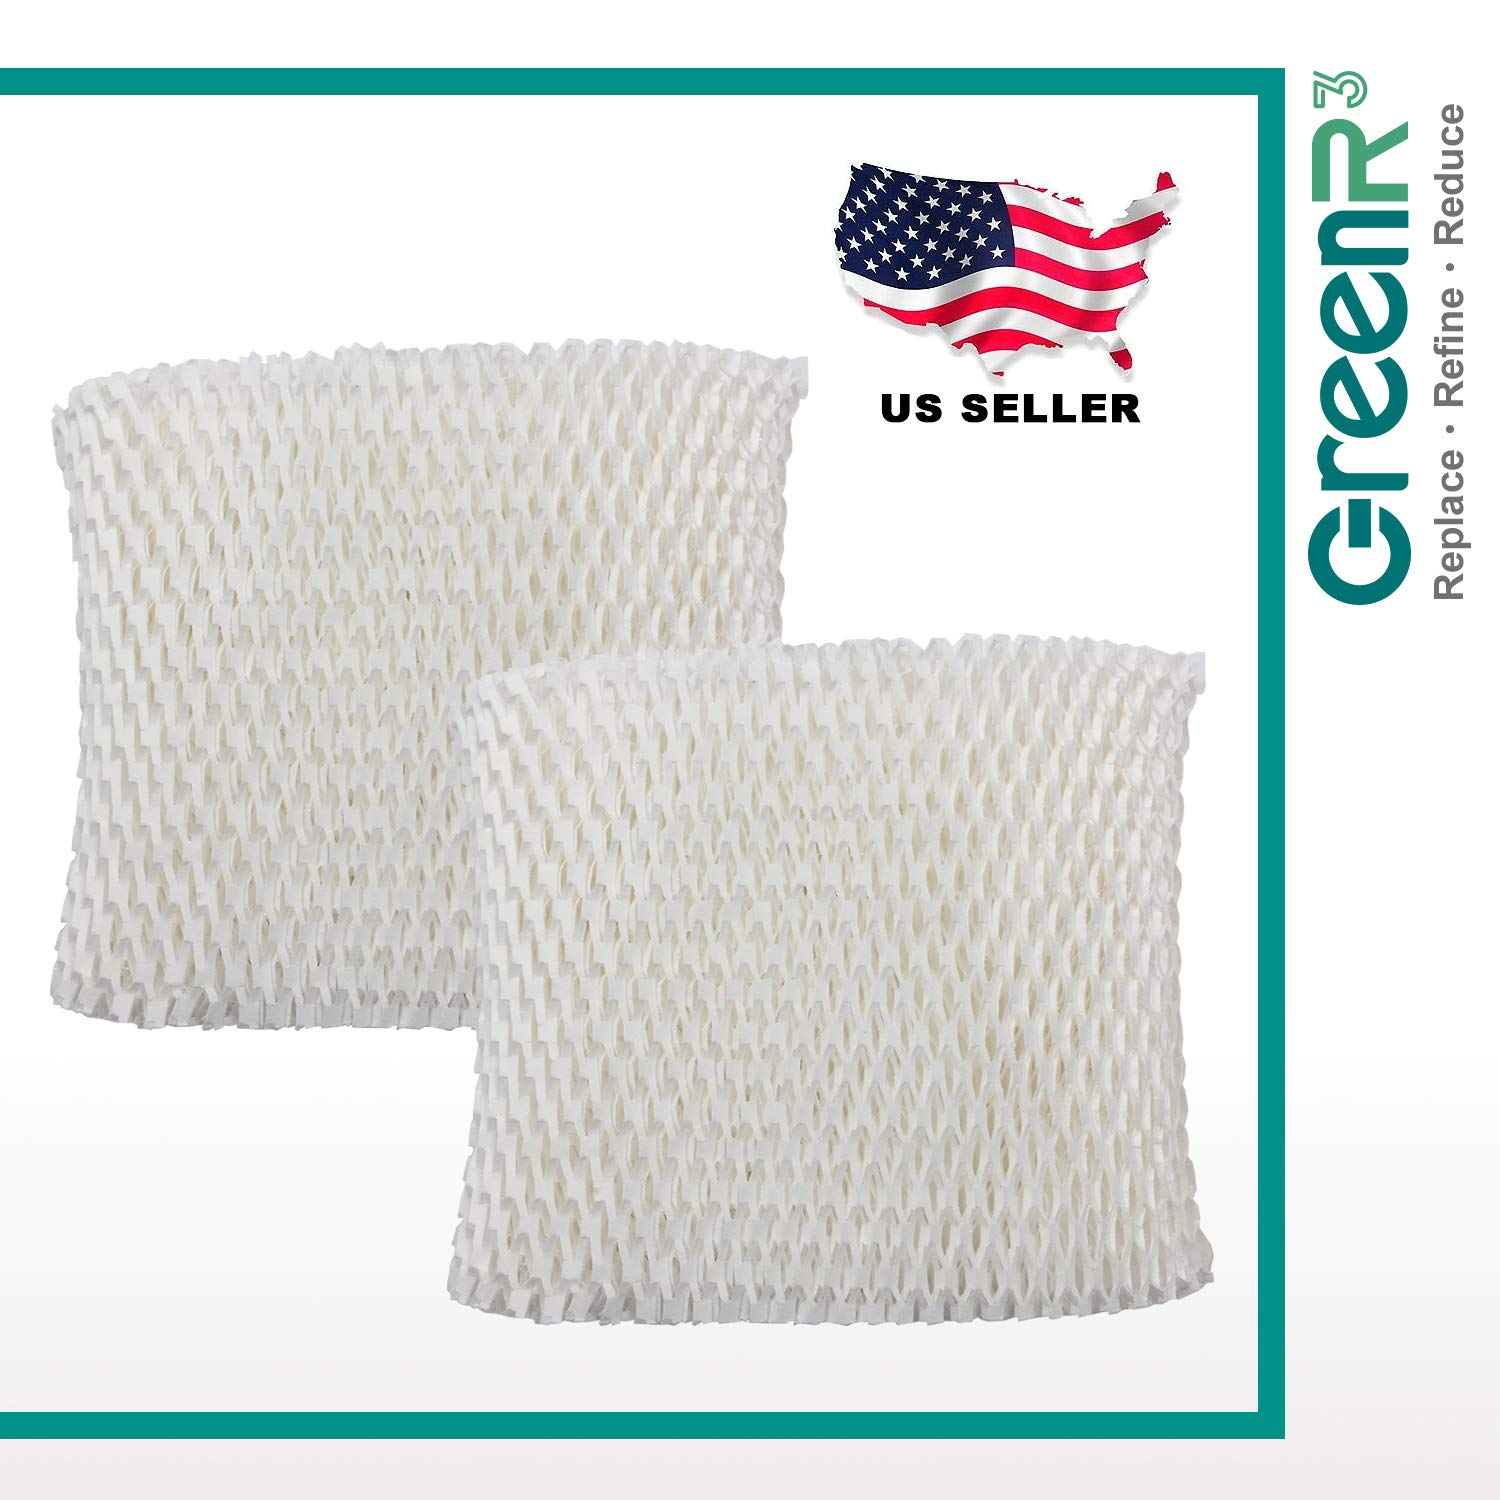 GreenR3 2-Pack Replacement Wick Filters for Honeywell HC-888 Fits HCM890 HCM890C HCM890-20 HCM-890 HCM-890-C HCM-890-20 Duracraft DCM200 DH890C HCM890 DH888 DH890 Idylis 157855 D88-ID Humidifiers